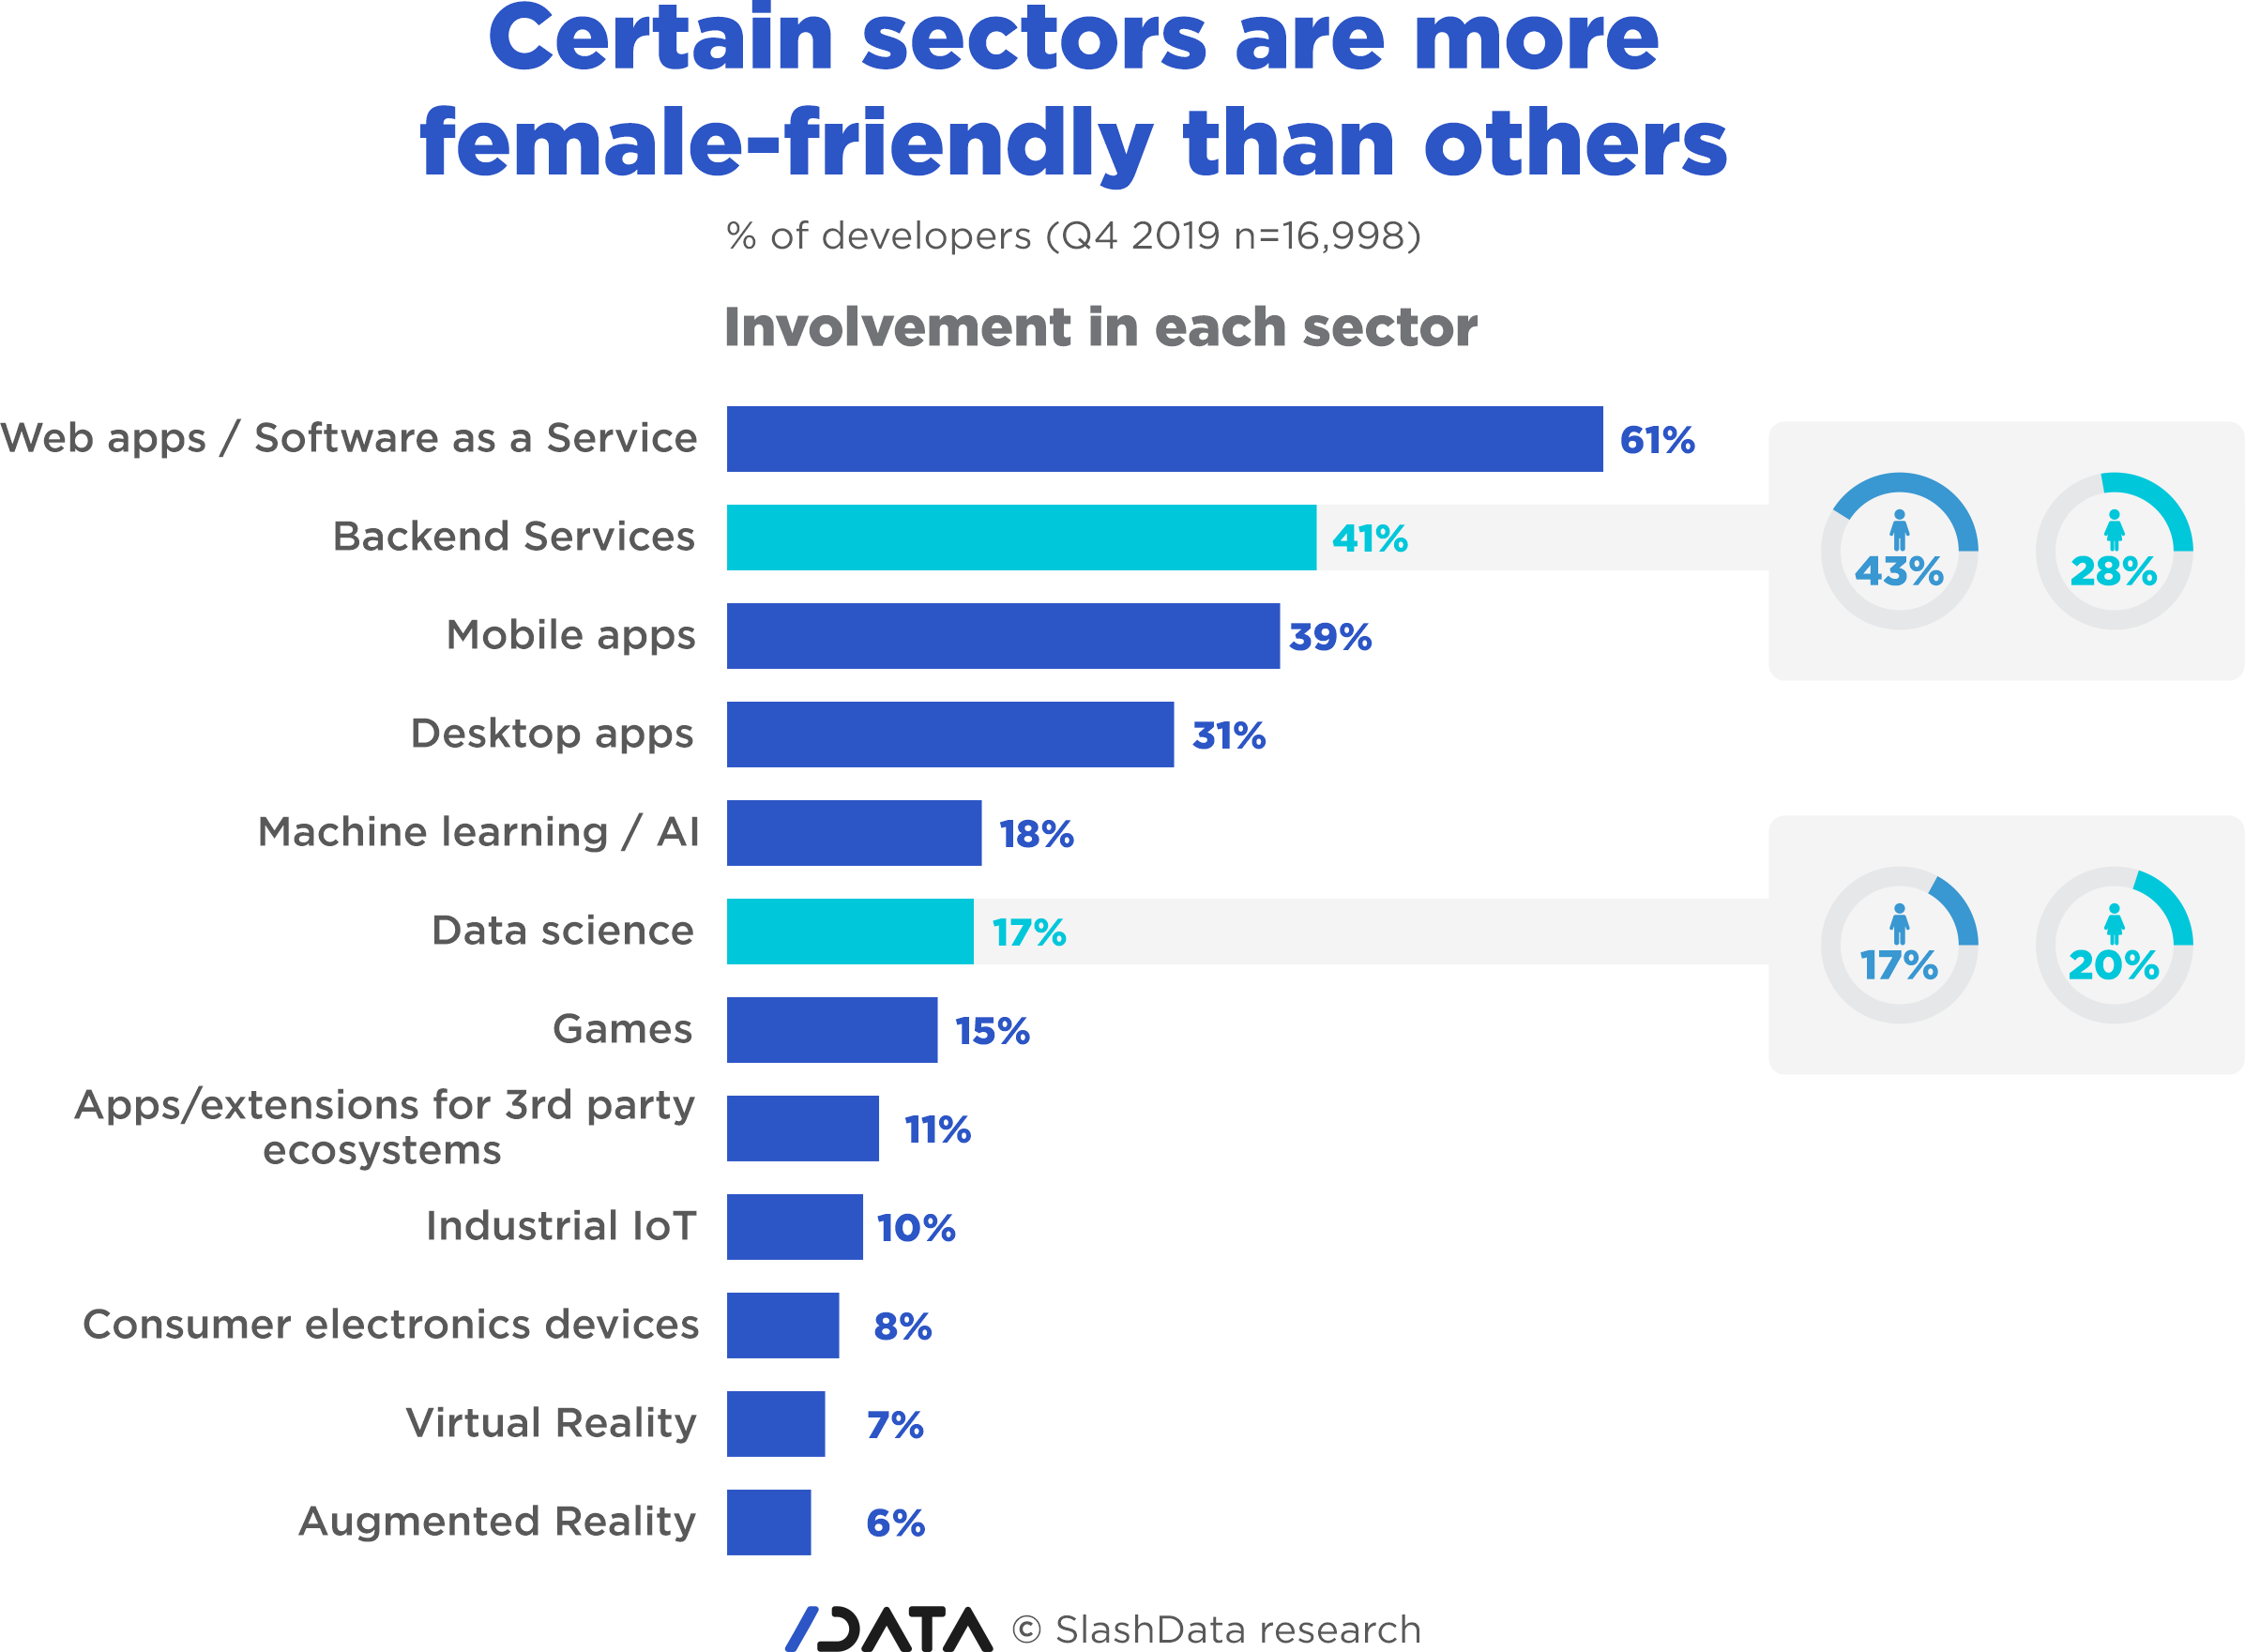 Gender gap - certain sectors are more female-friendly than others